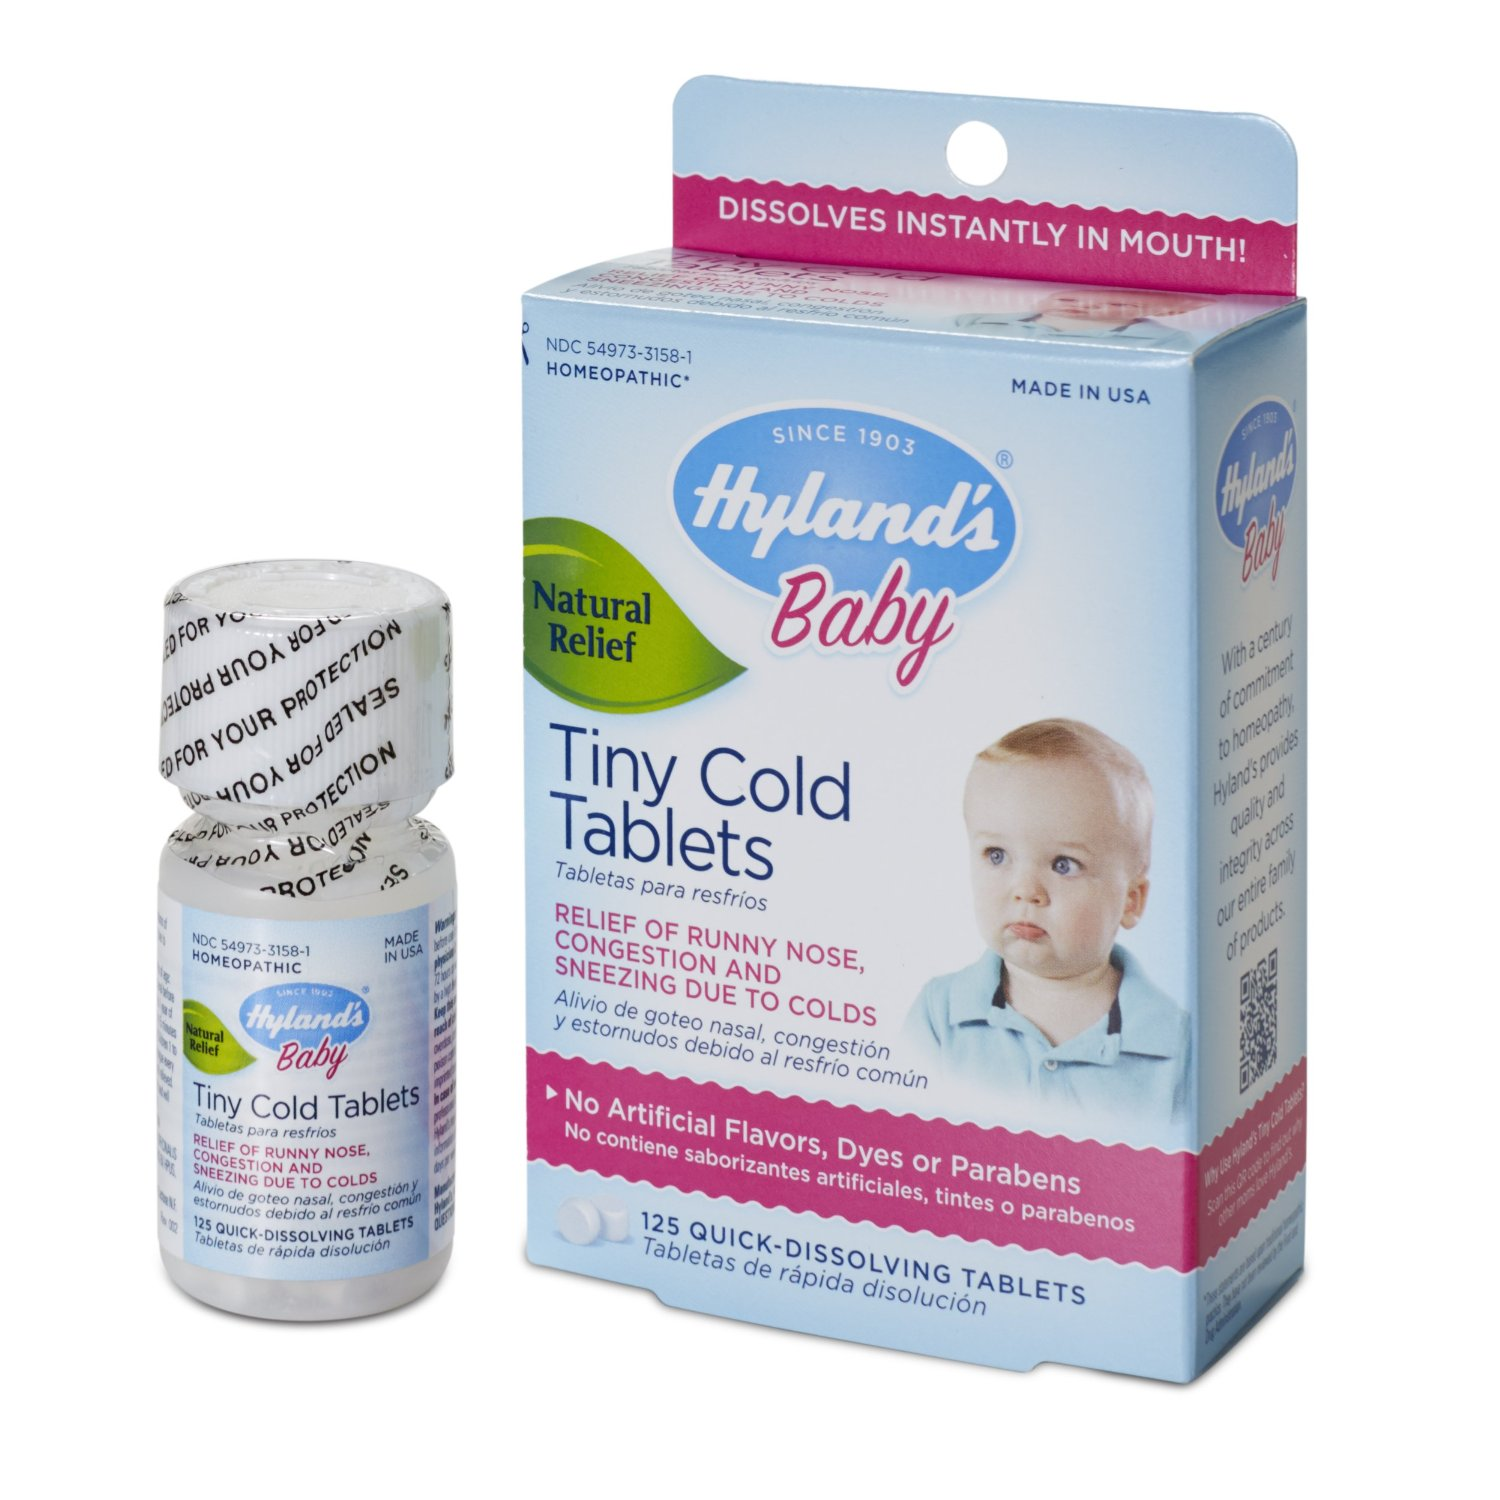 Hyland's Homeopathic Baby Tiny Cold Tablets, 125 Count